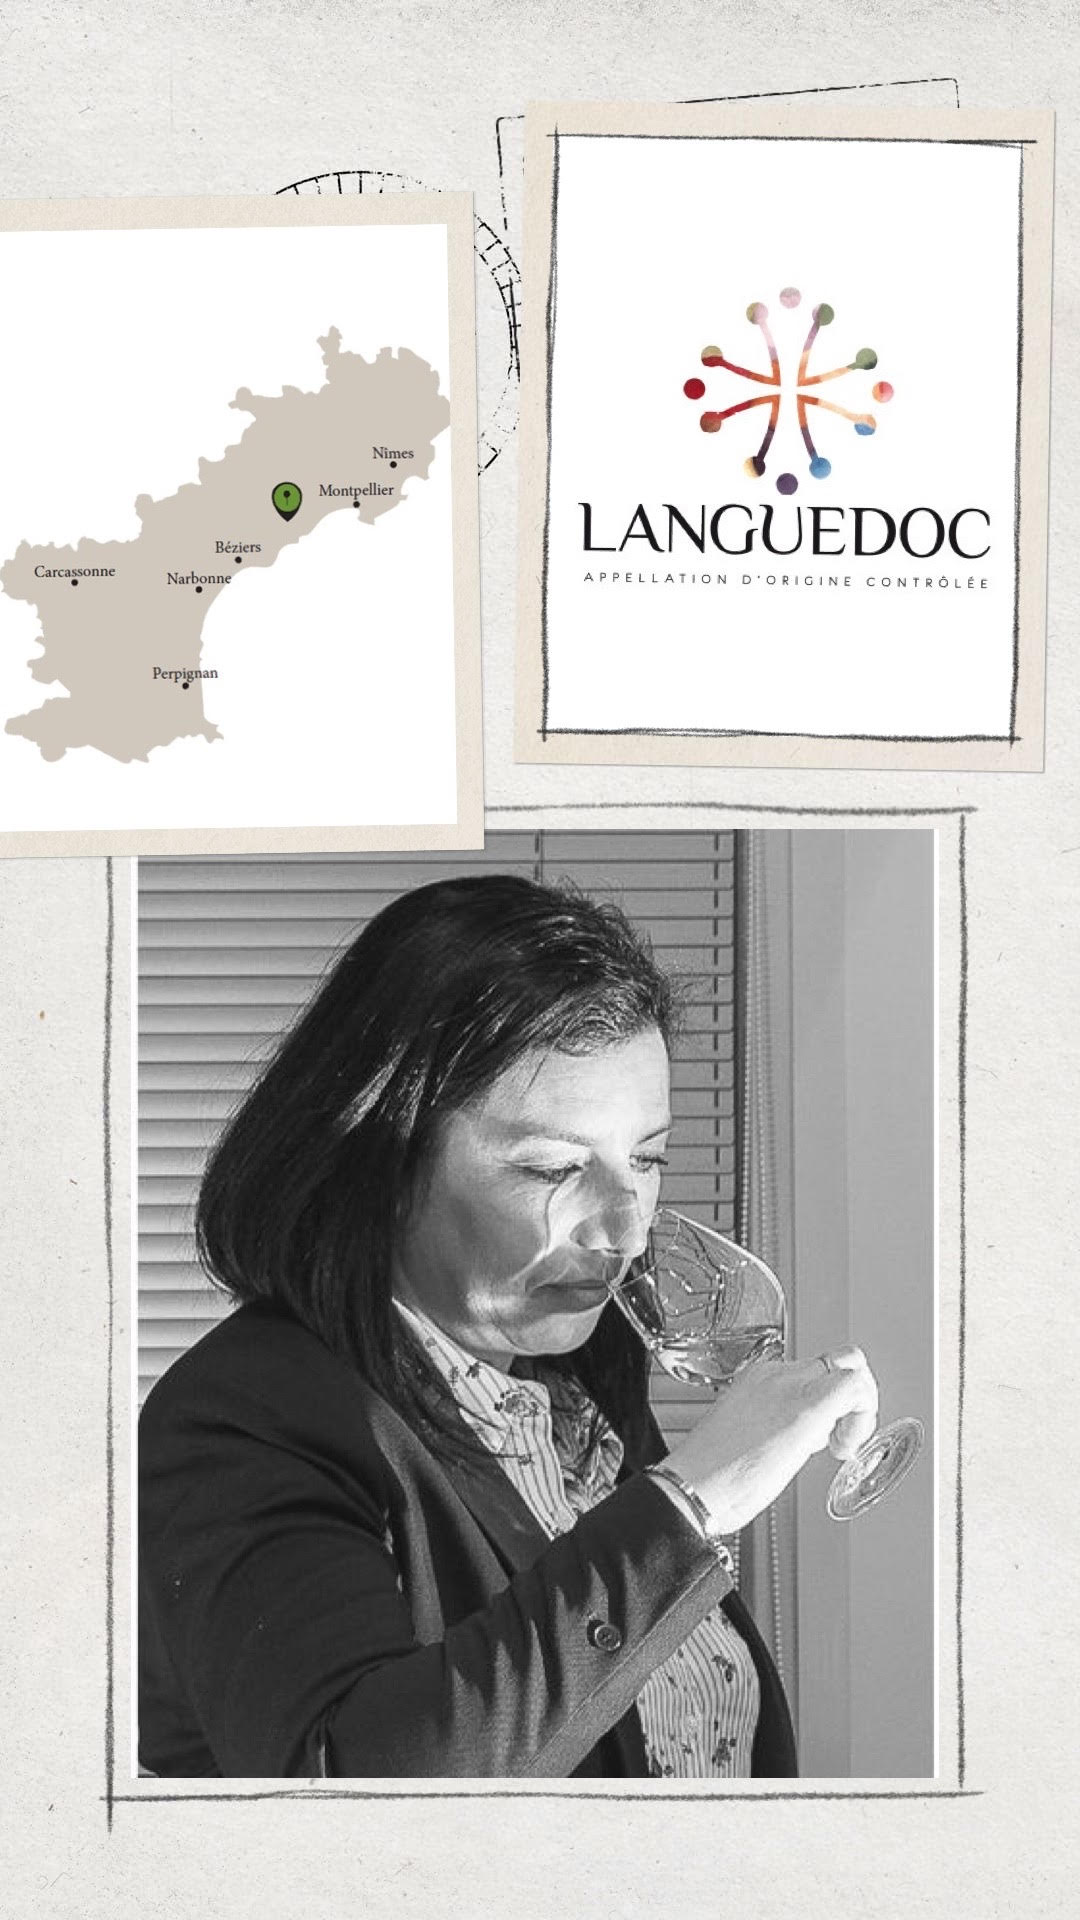 Languedoc Appoints its first General Director, Stéphanie Daumas